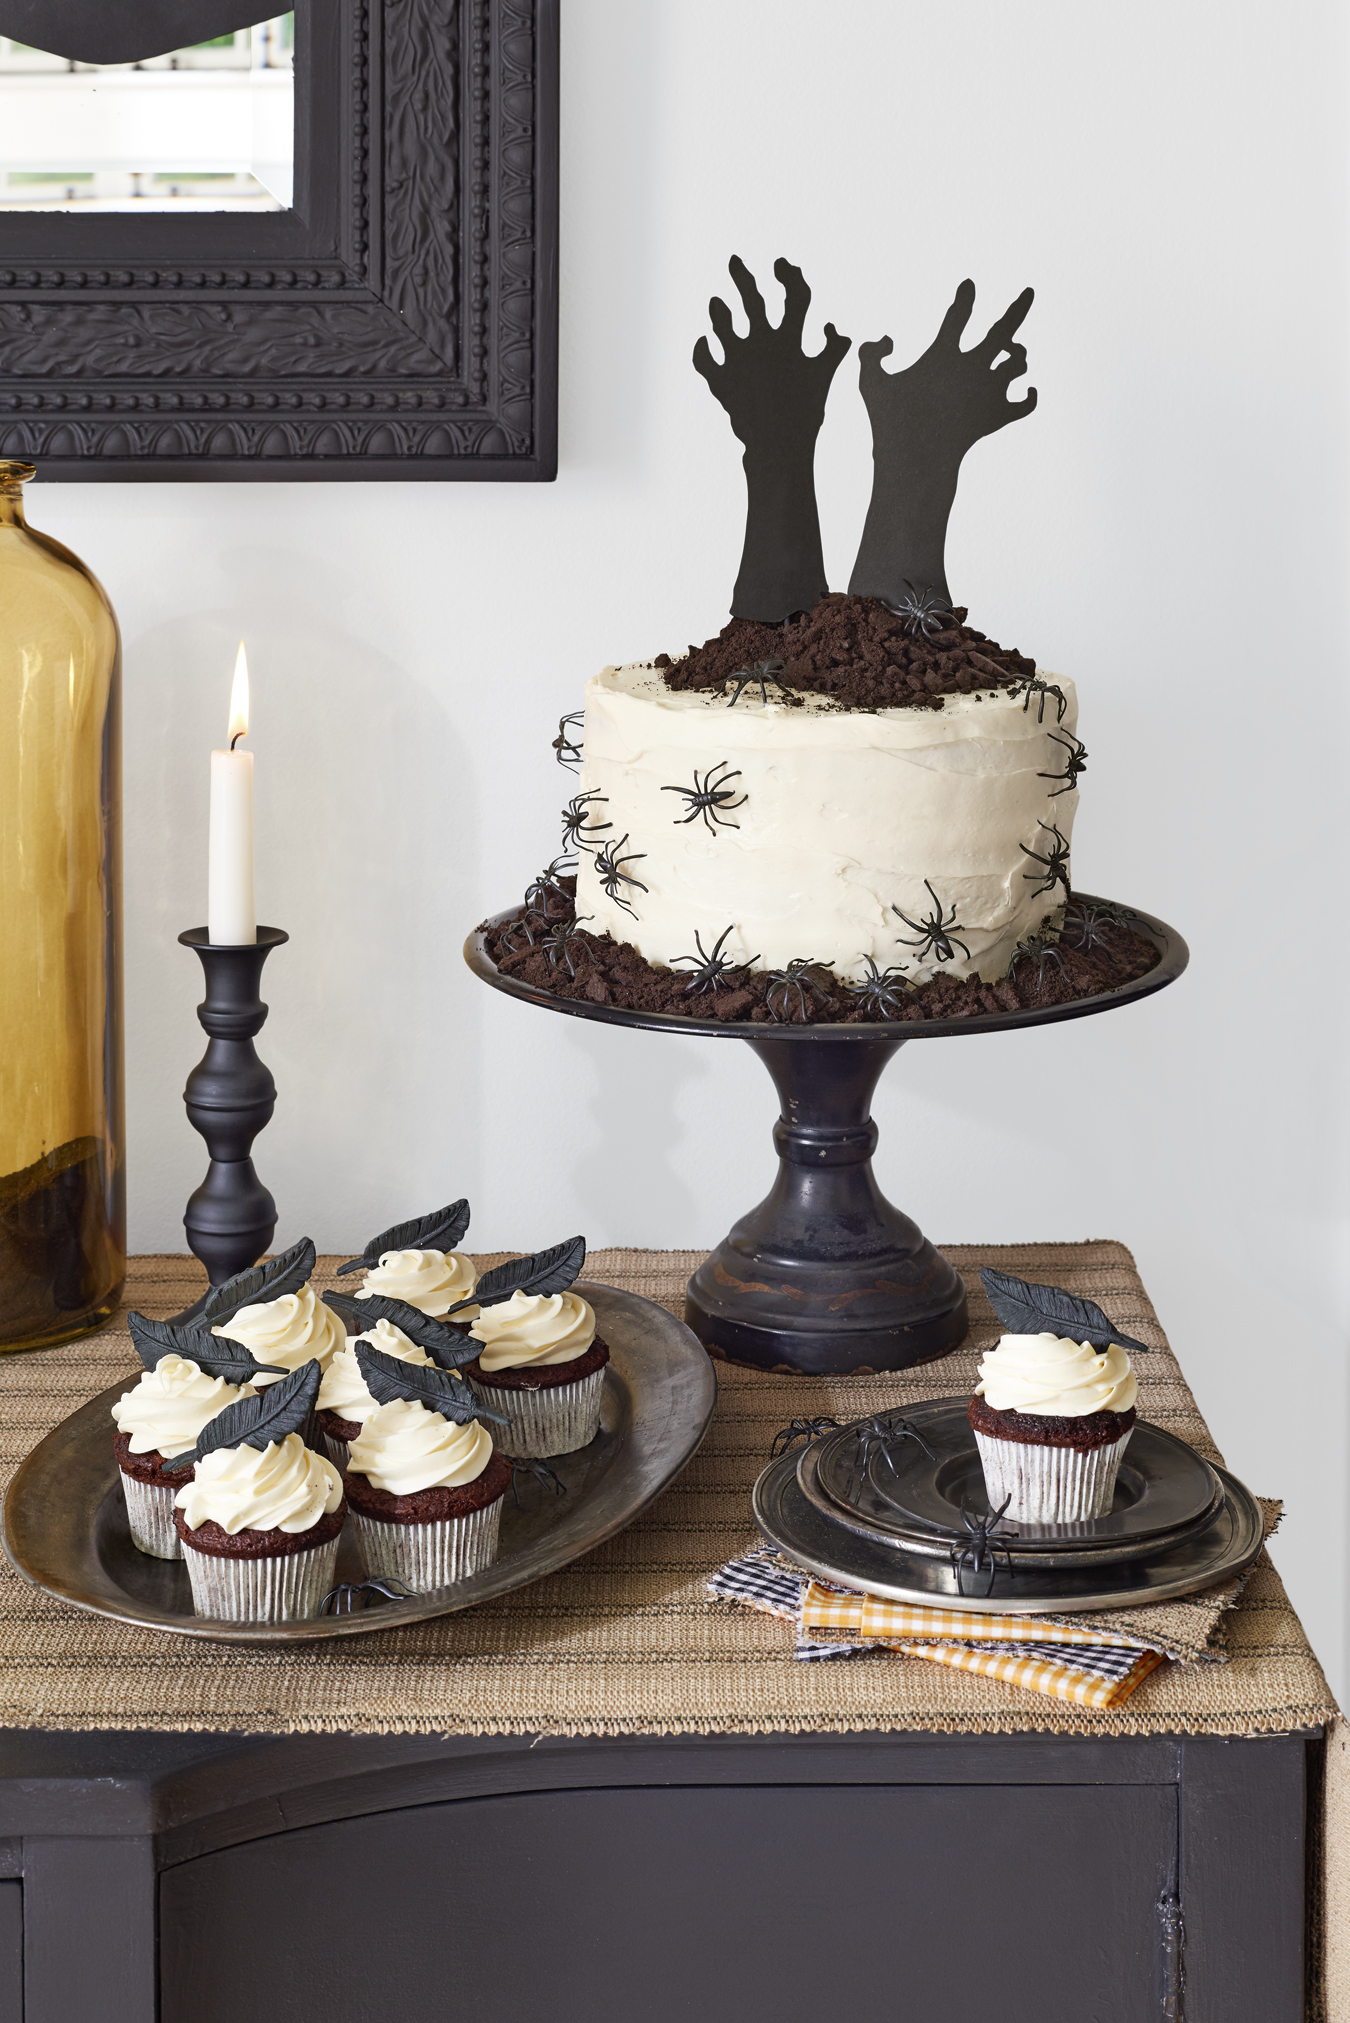 56 fun halloween party decorating ideas spooky halloween party decor - Simple Halloween Cake Decorating Ideas